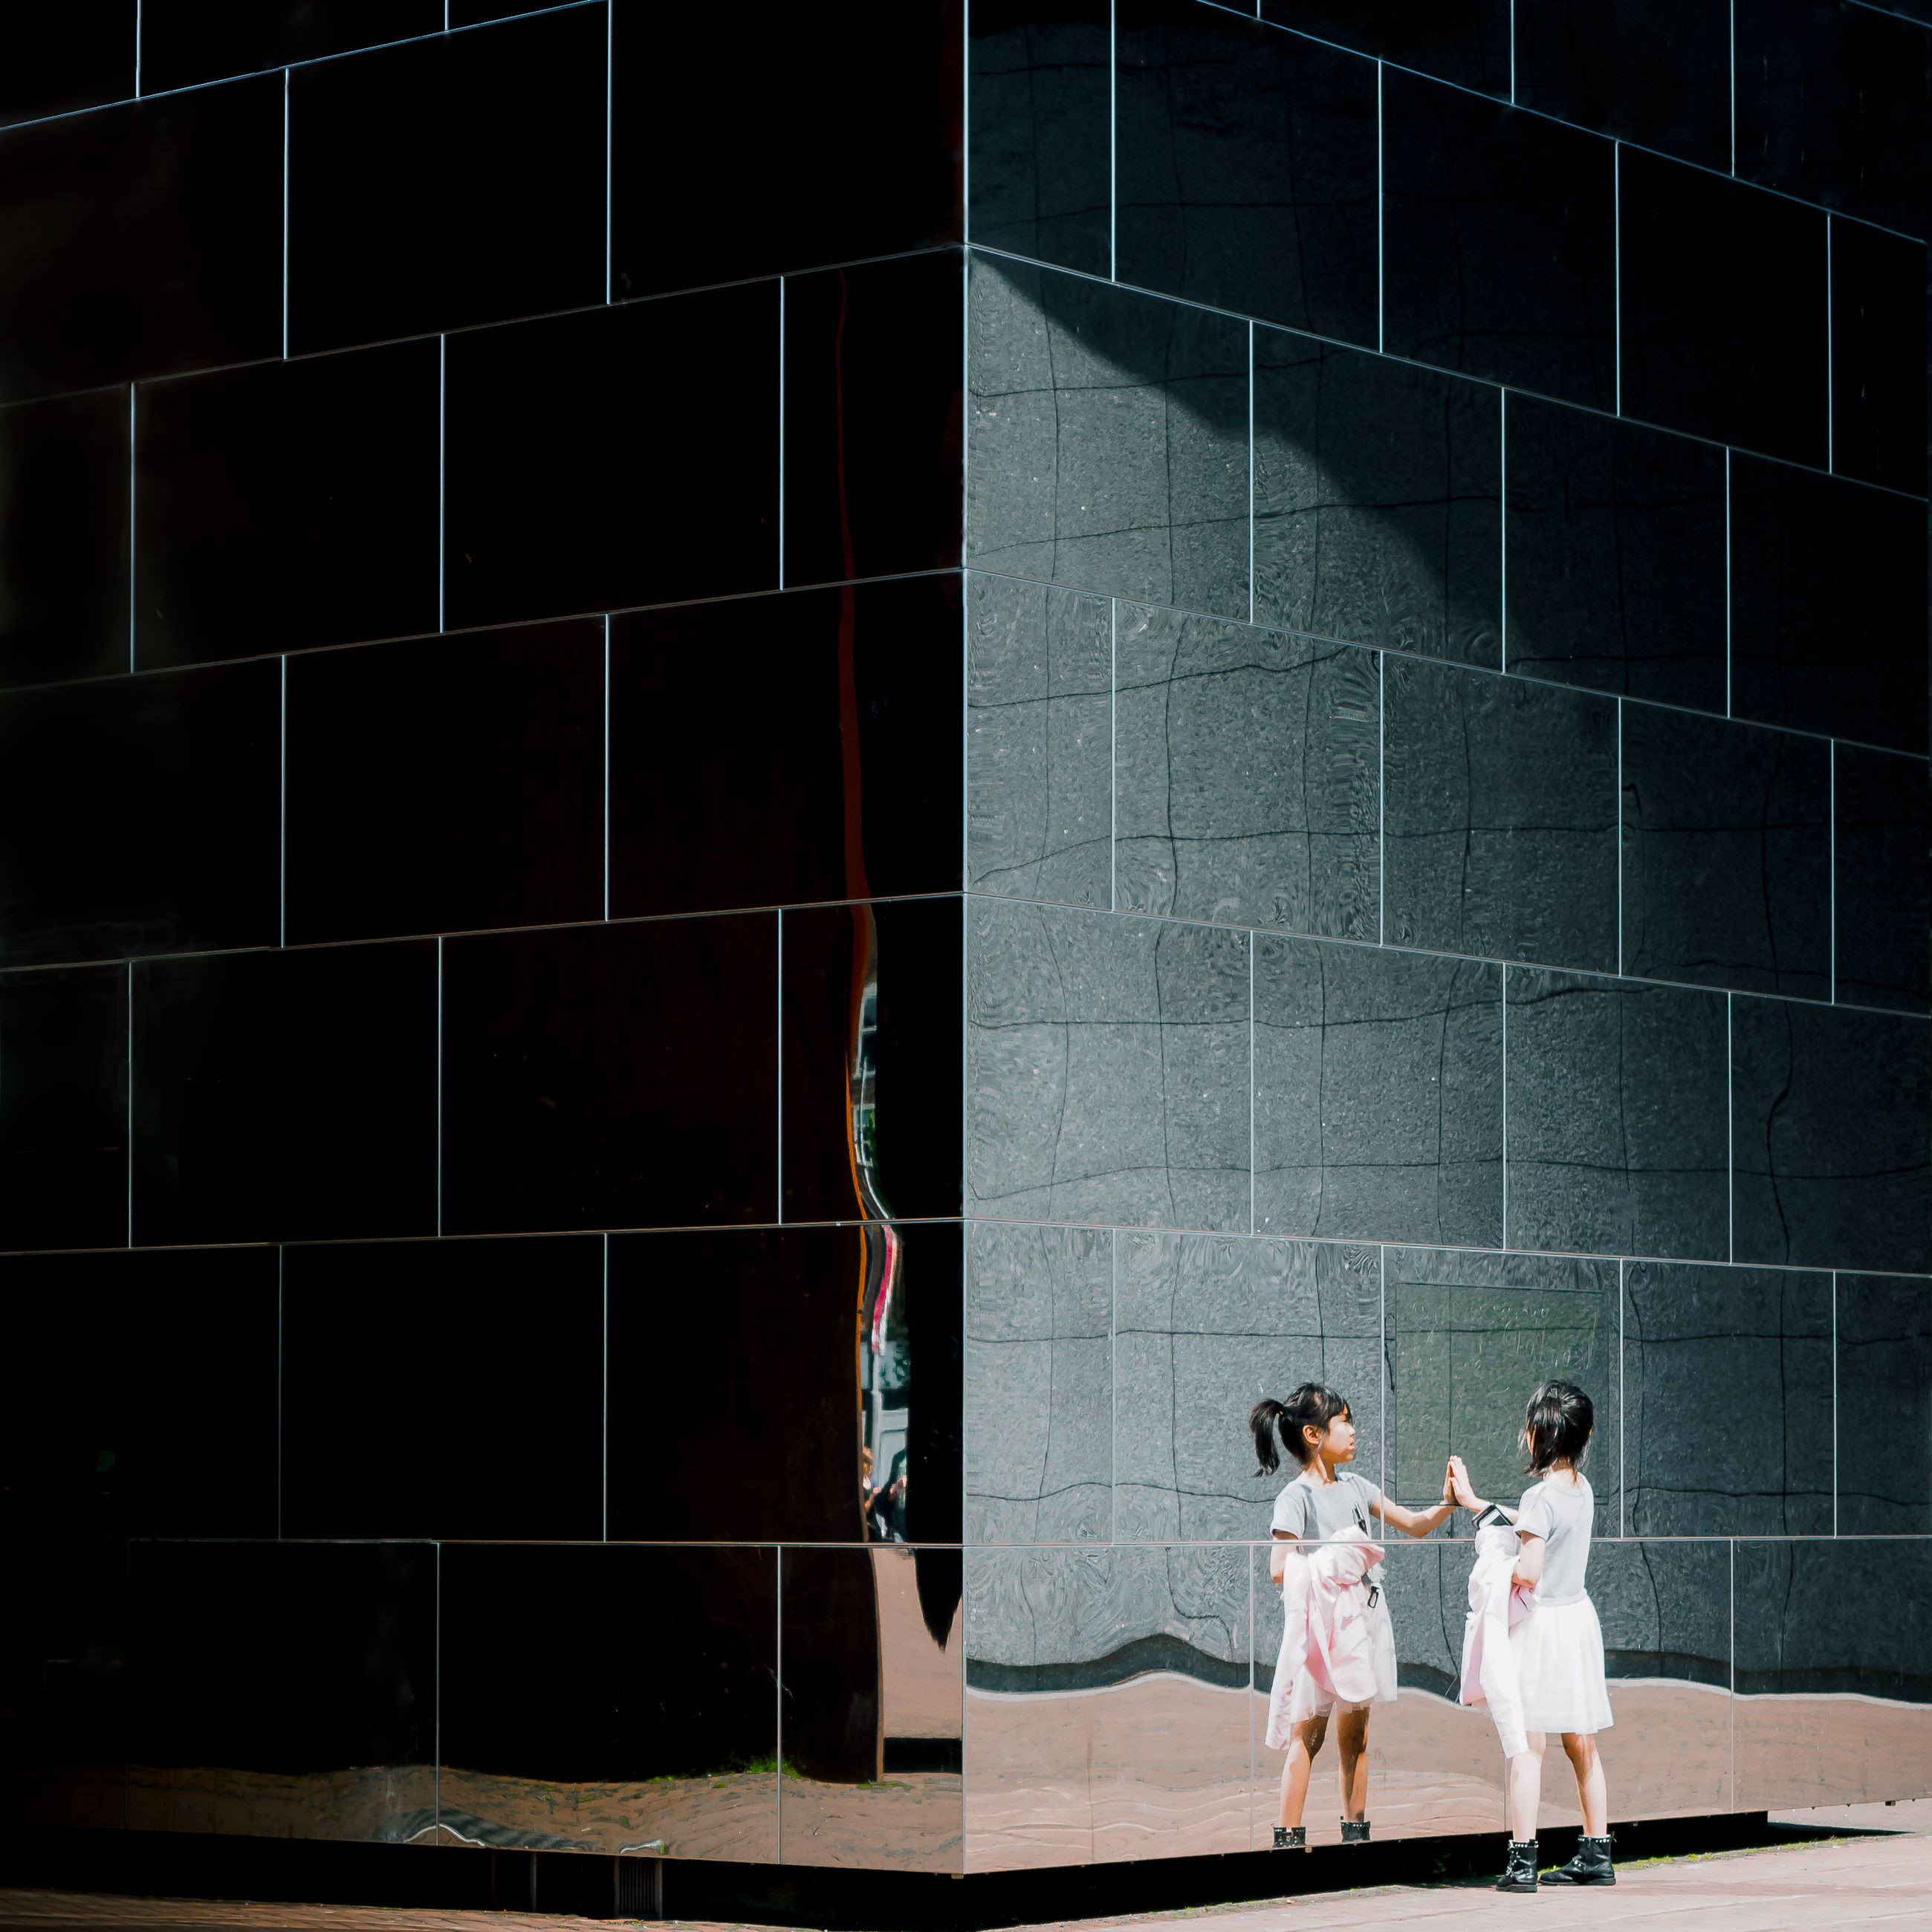 two people, architecture, women, built structure, adult, togetherness, men, wall - building feature, lifestyles, building exterior, couple - relationship, standing, young women, young adult, people, real people, females, casual clothing, day, love